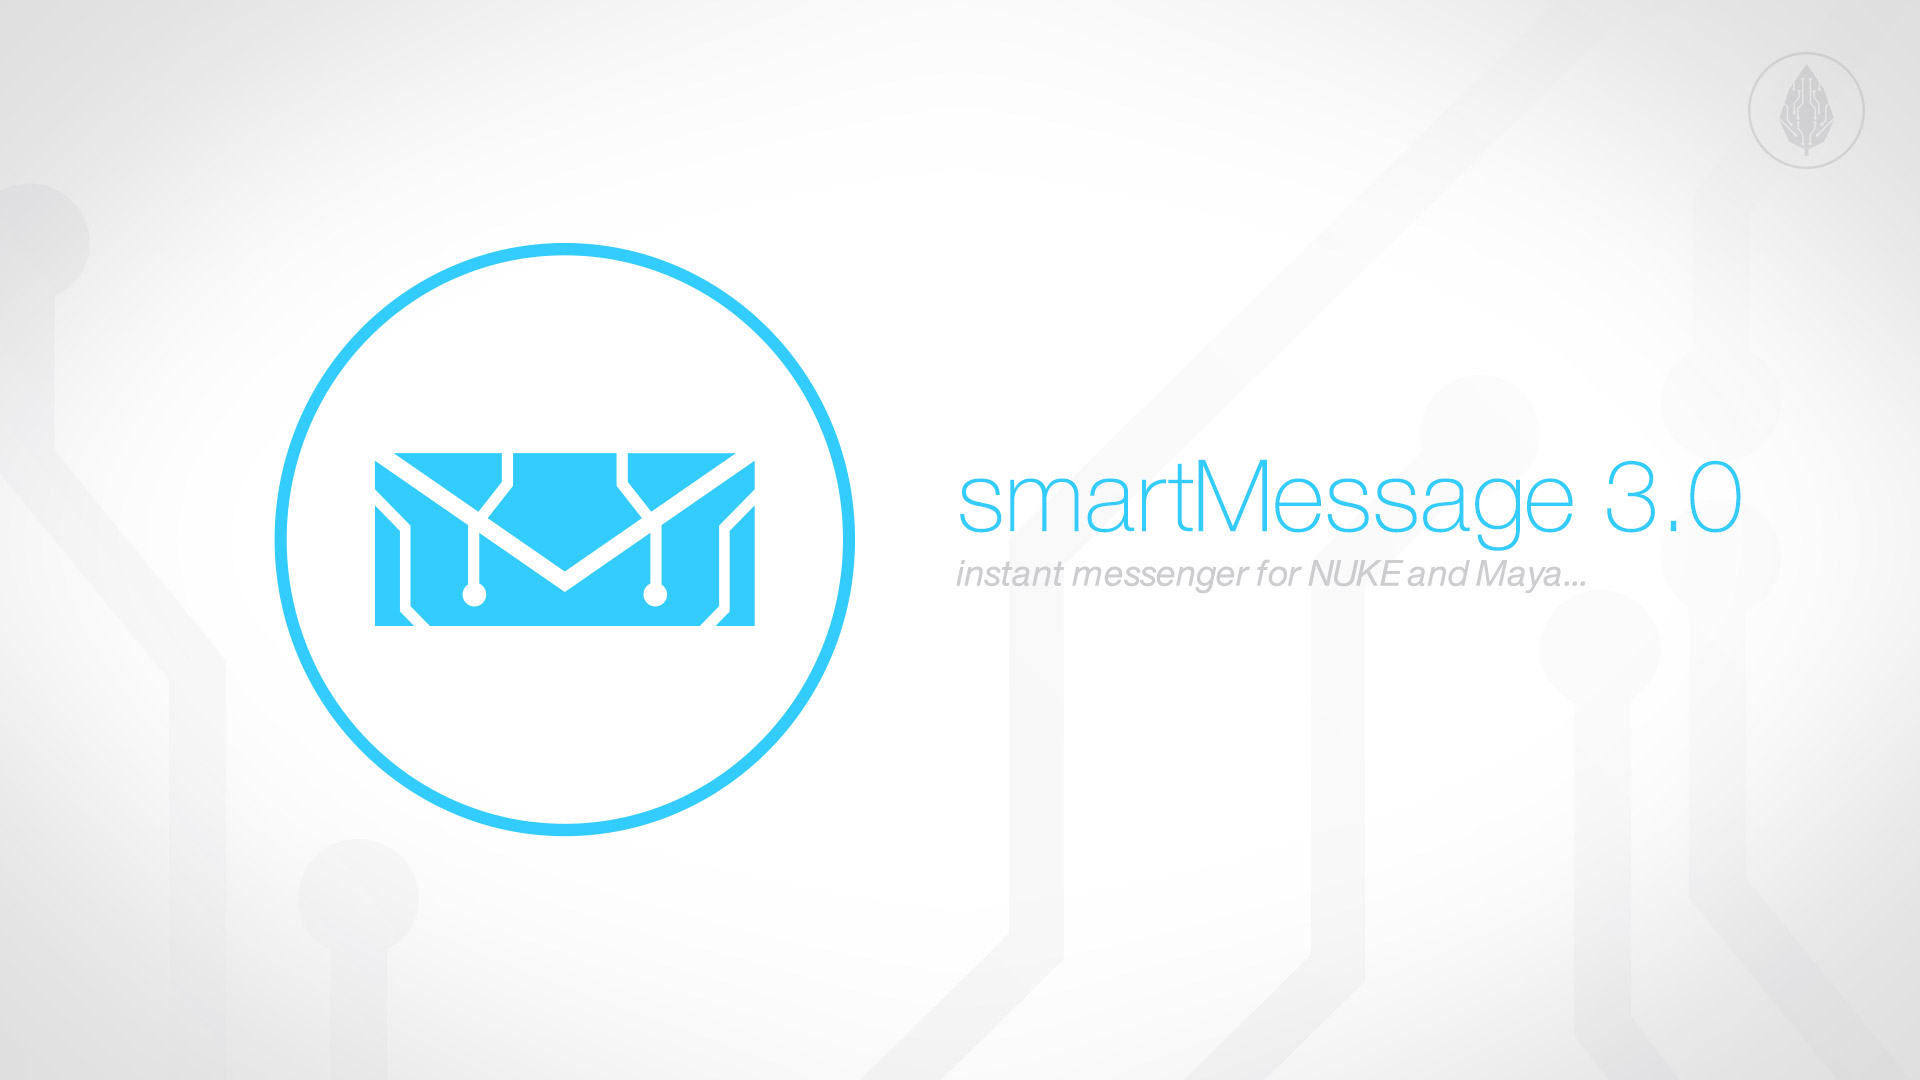 Published smartMessage 3.0